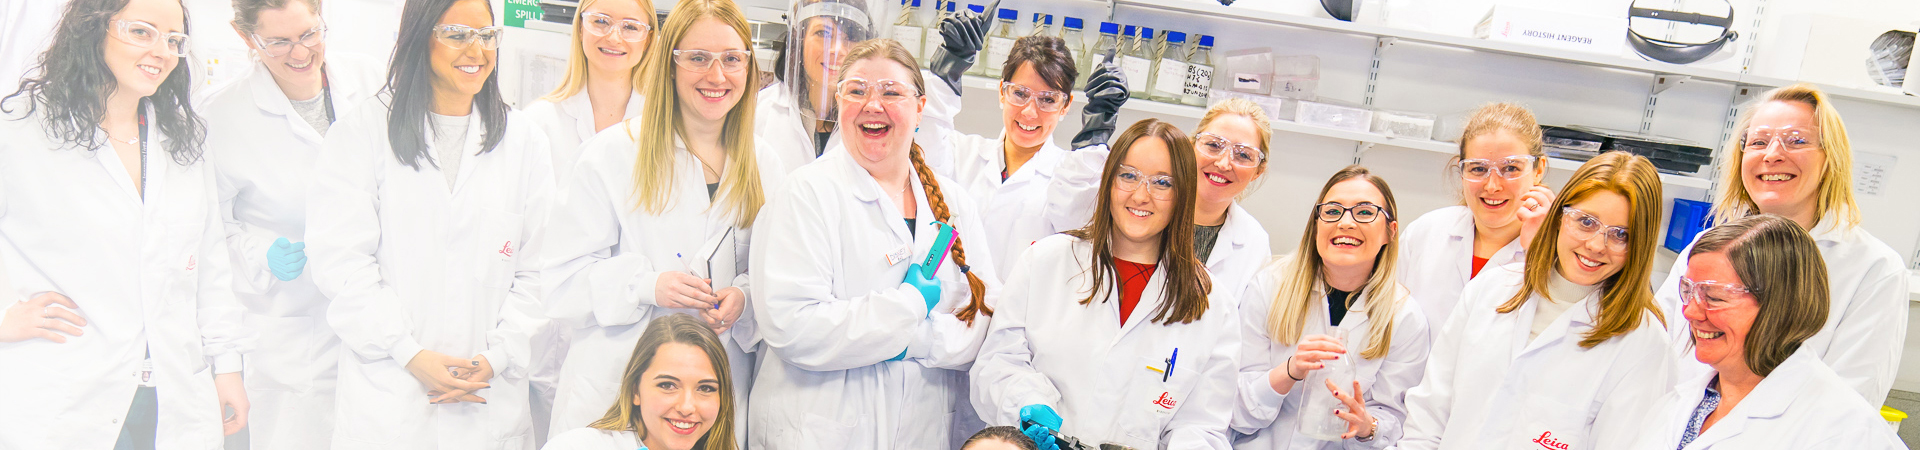 Find a Career at Leica BioSystems